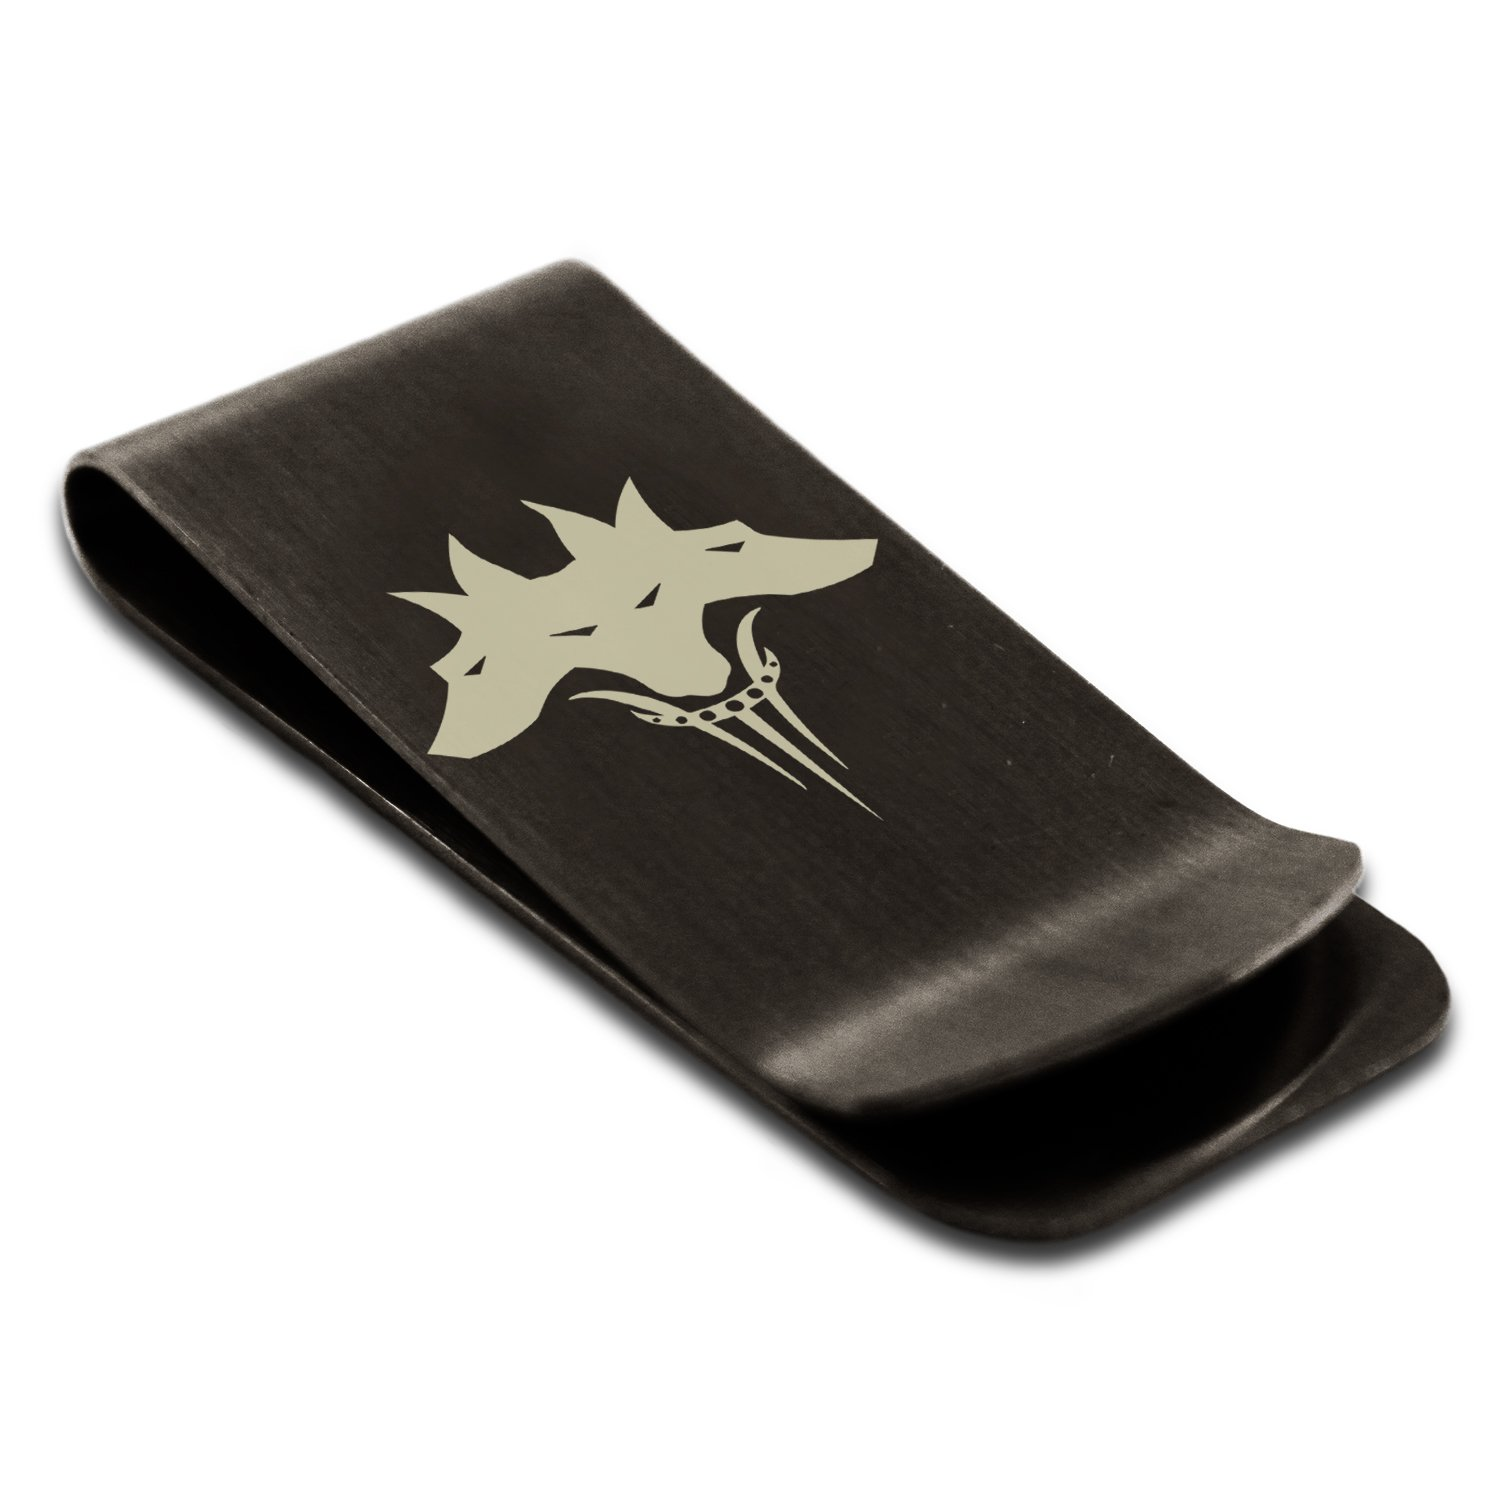 Stainless Steel Greek Mythology Cerberus Symbol Engraved Money Clip Credit Card Holder